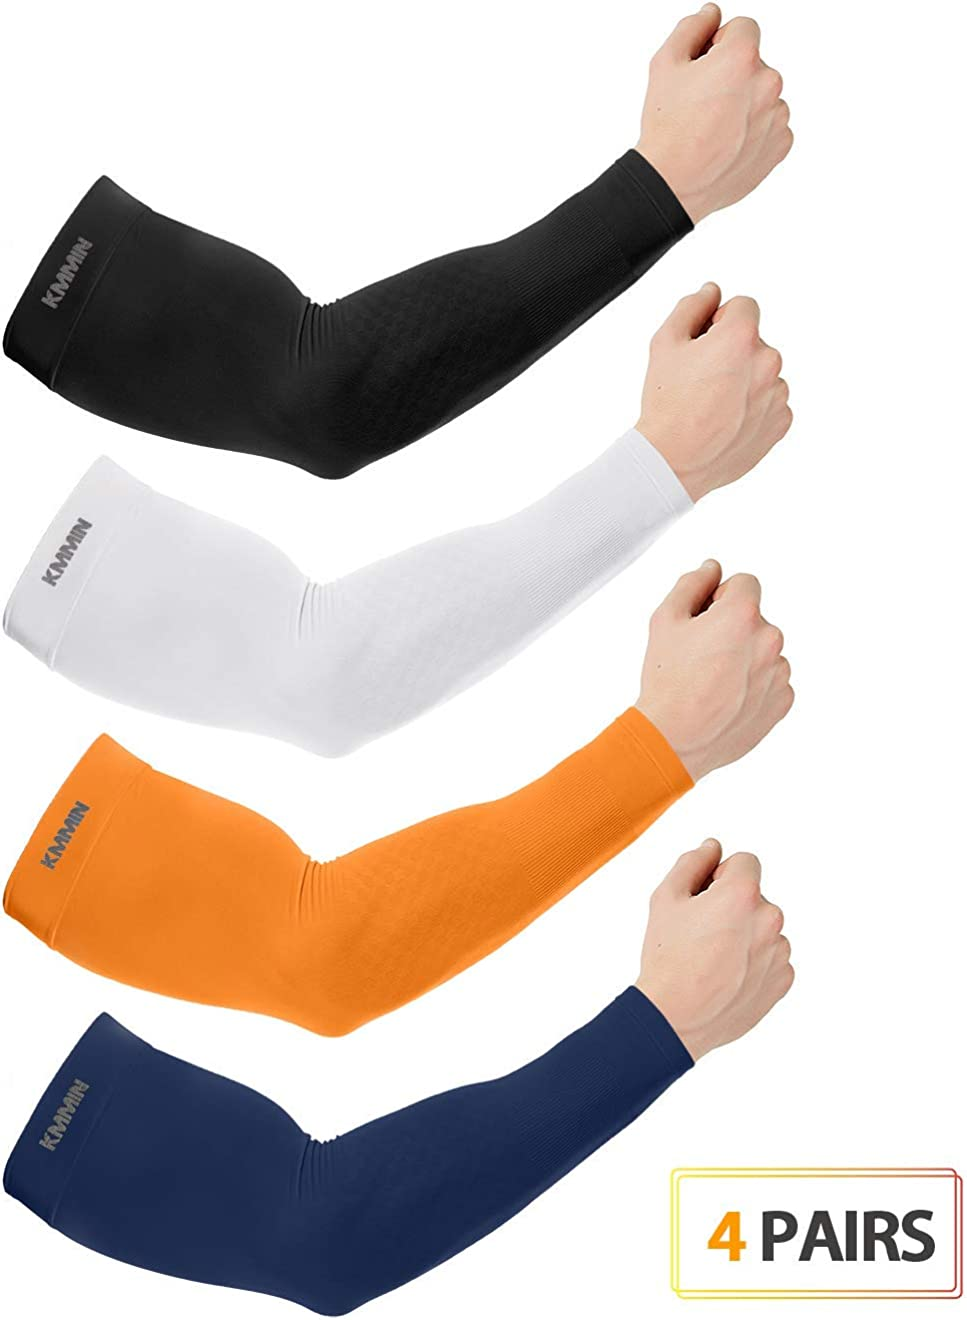 KMMIN Arm Sleeves UV Protection for Driving Cycling Golf Basketball Warmer Cooling UPF 50 Sunblock Protective Gloves for Men Women Adults Covering Tattoos, Black/White/Orange/Navy: Clothing